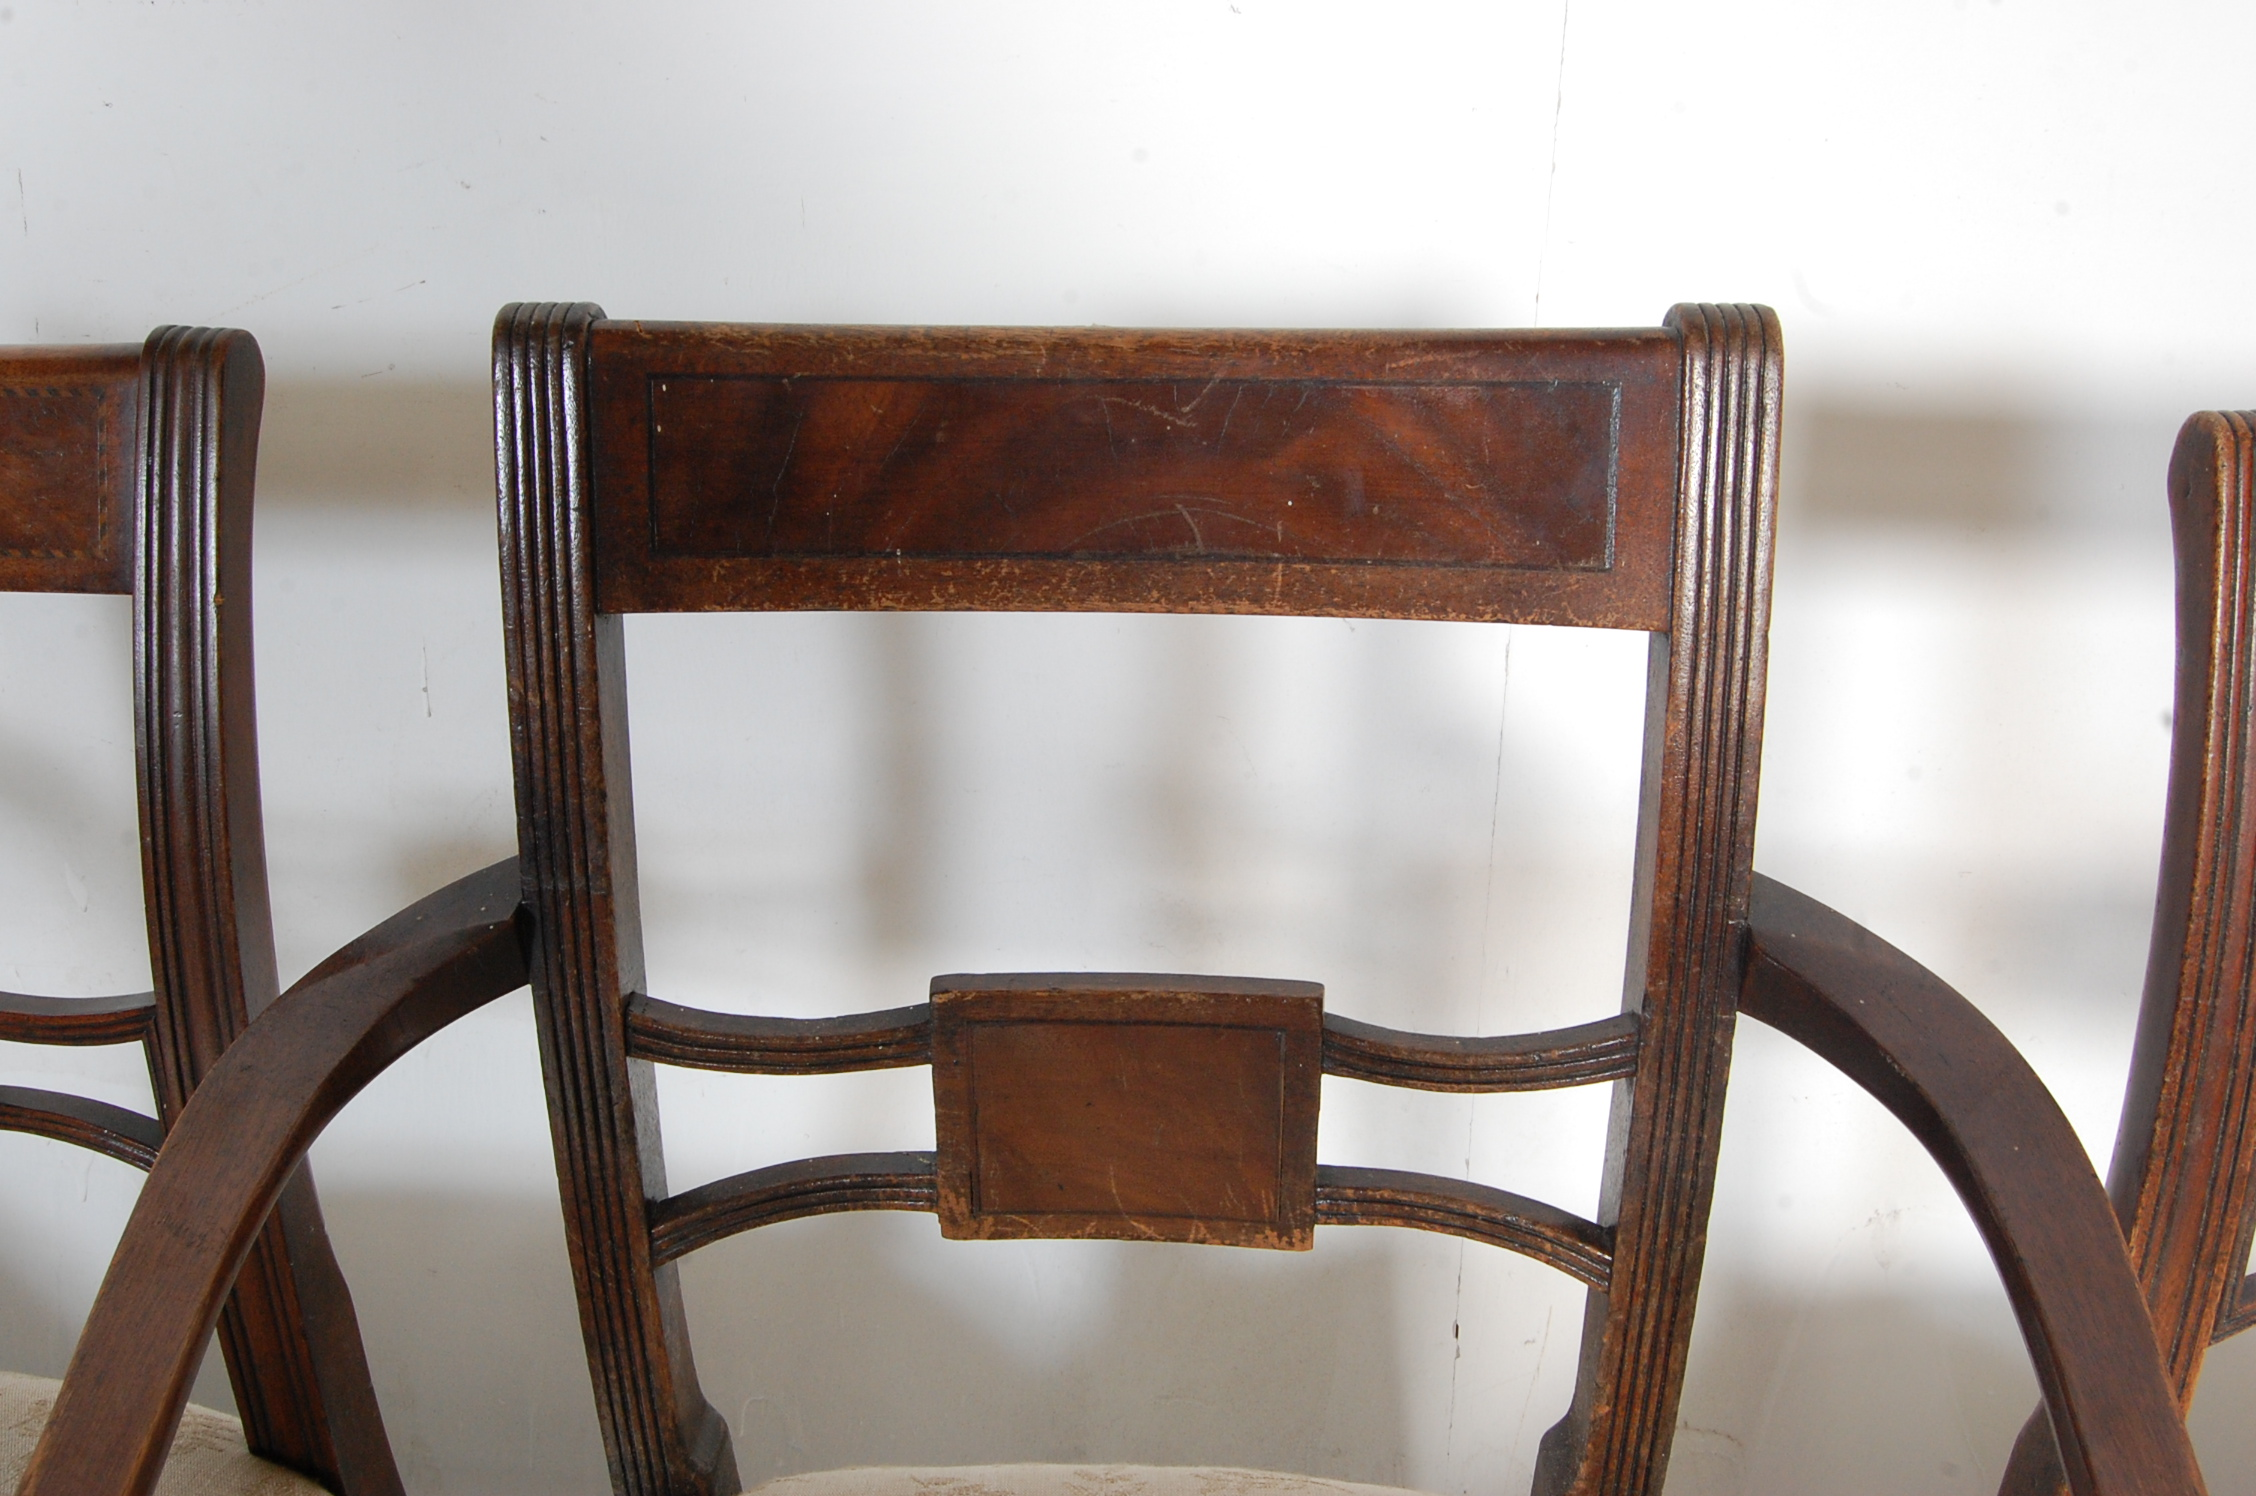 AN ANTIQUE EDWARDIAN REGENCY REVIVAL HARLEQUIN SET OF SIX CHAIRS - Image 5 of 7